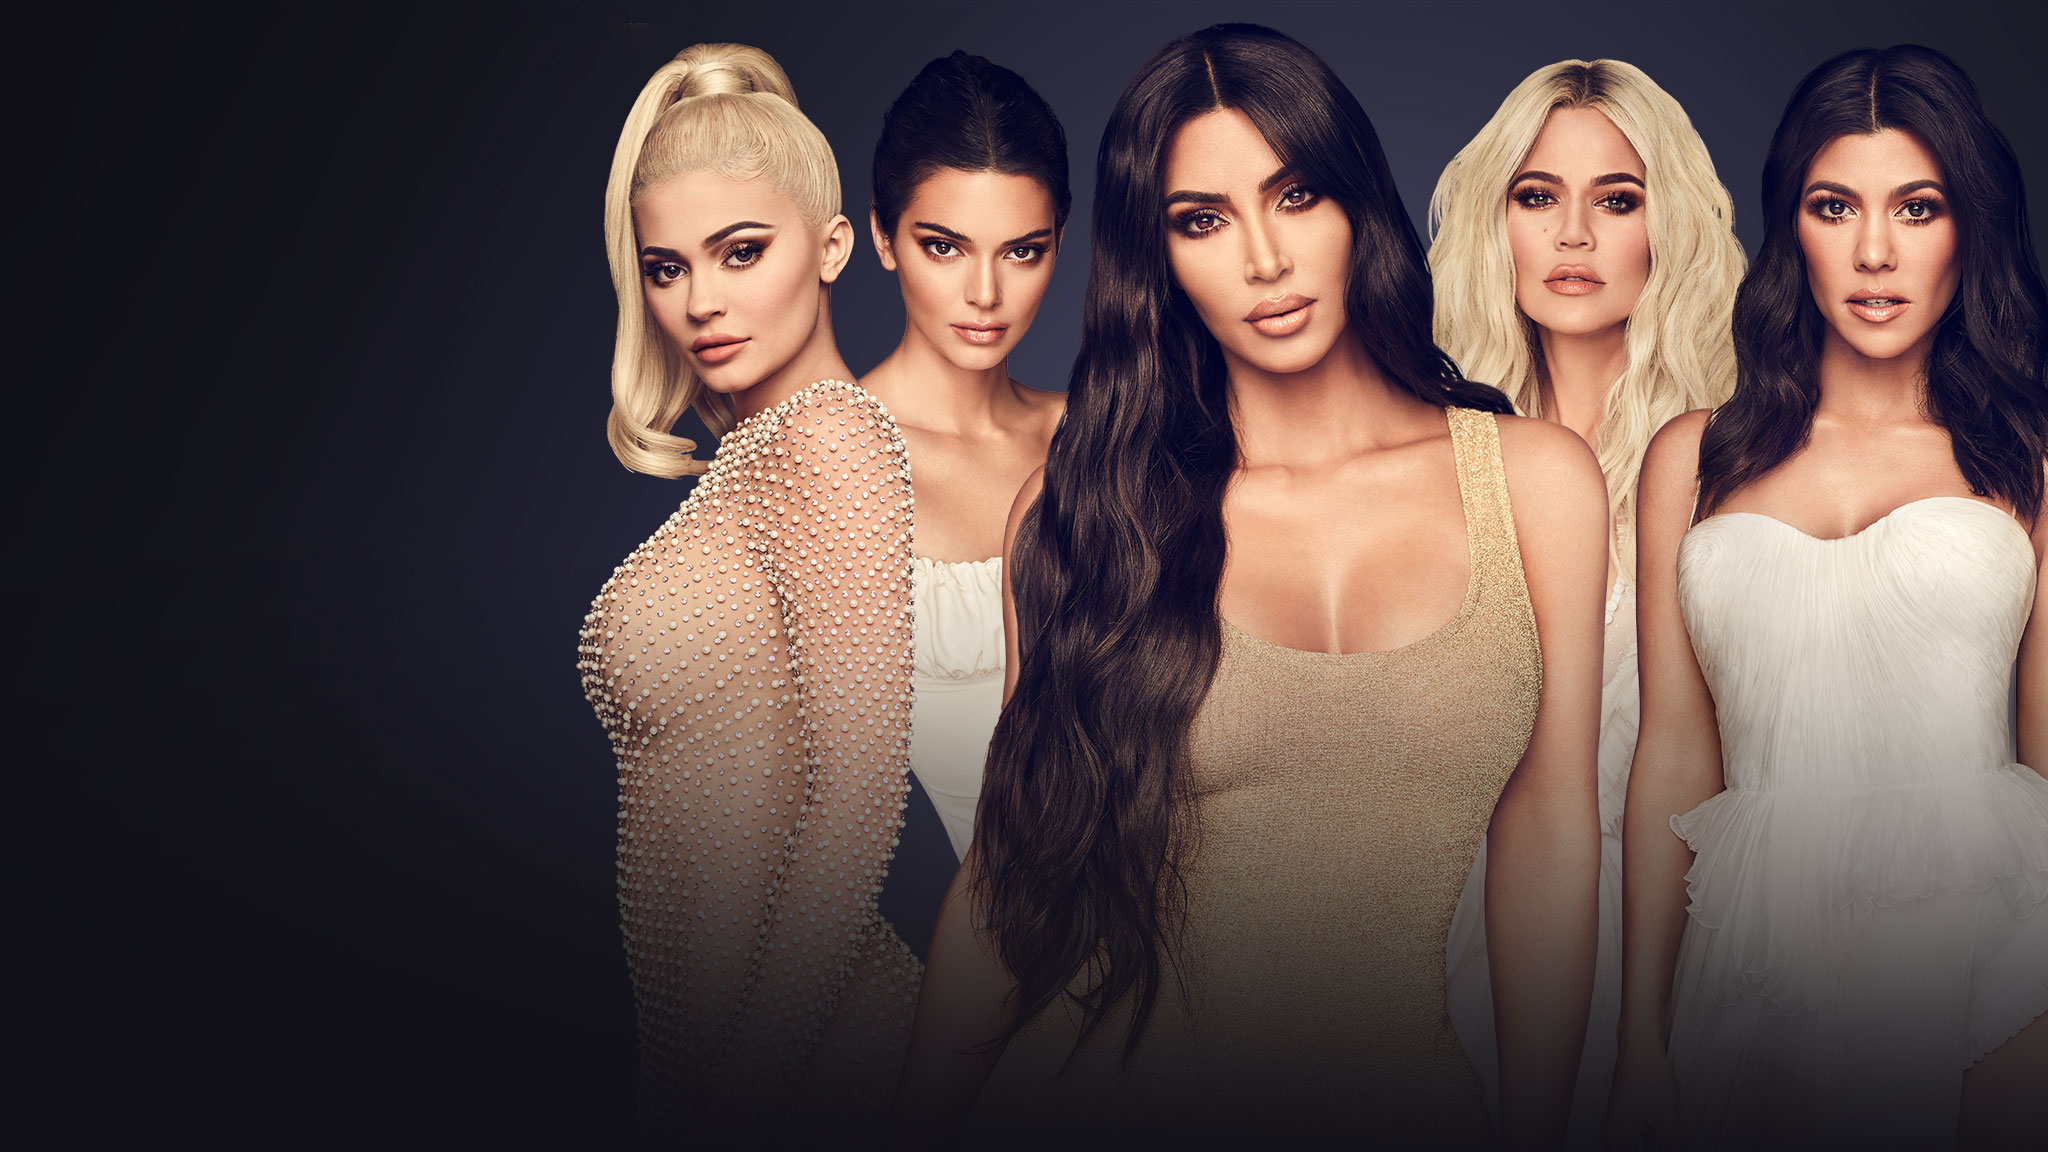 keeping up with the kardashians online season 3 episode 3